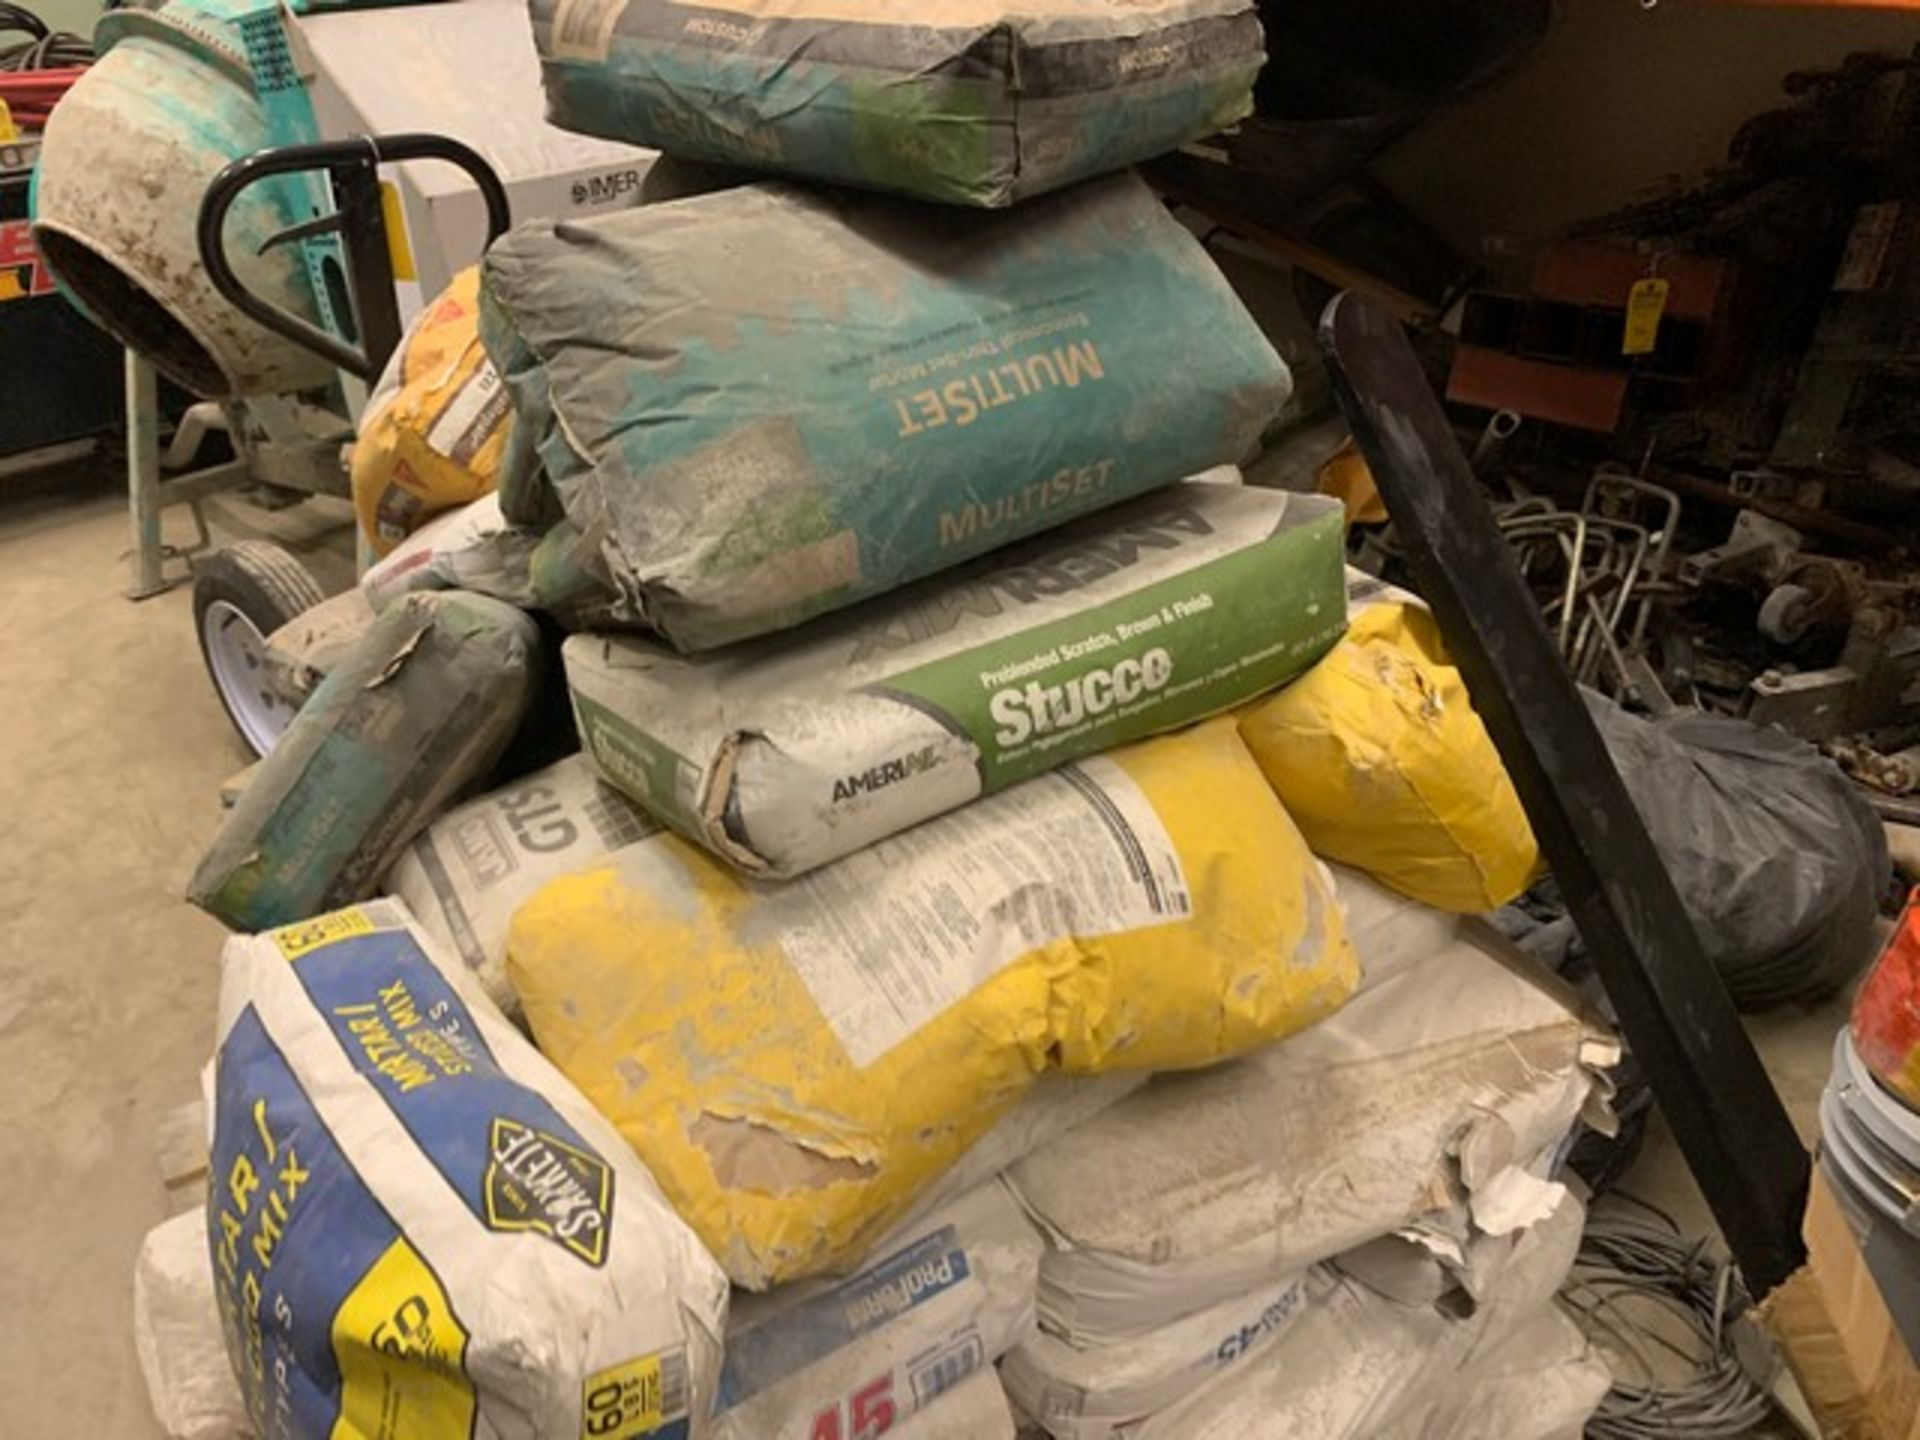 Lot 60 - ASSORTED BUCKETS & BAGS OF STUCCO, ADHESIVE, ETC